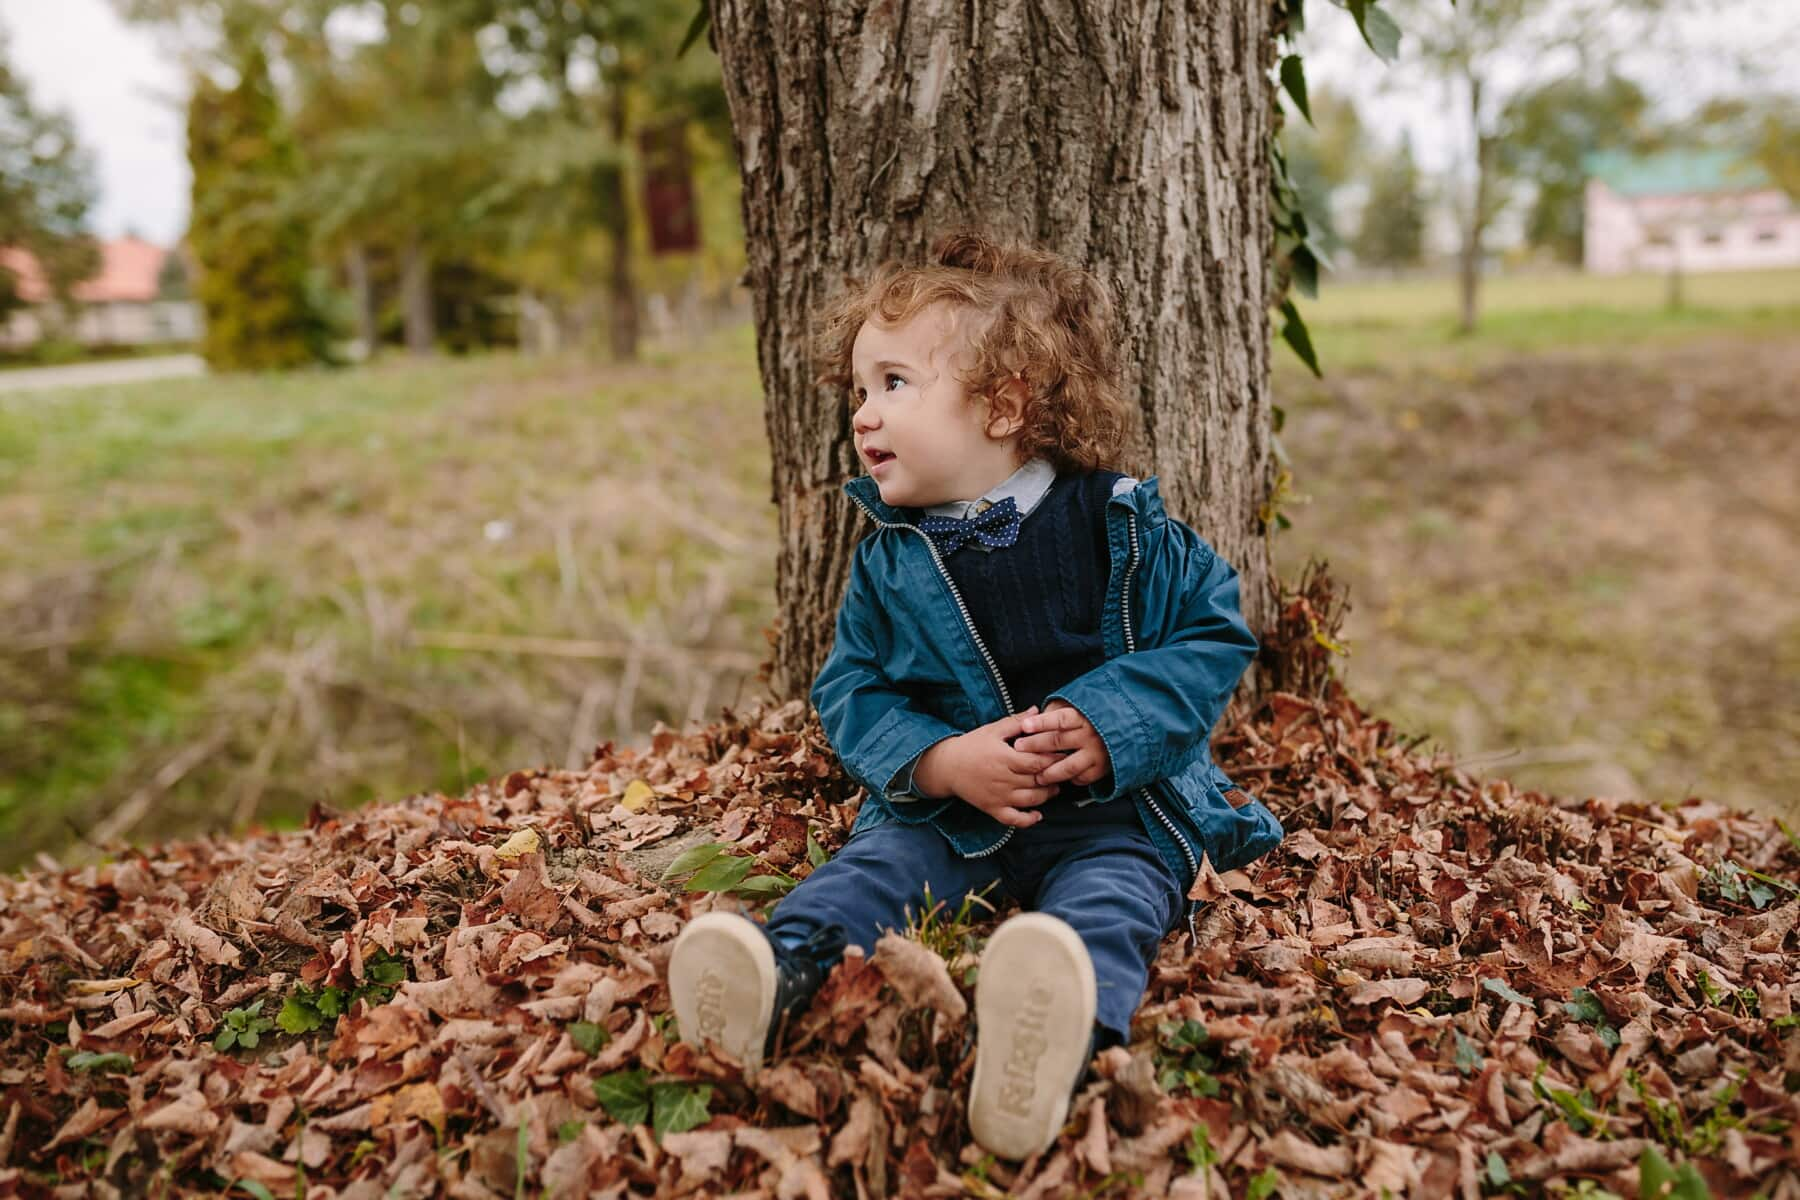 brunette, toddler, baby, park, autumn, child, nature, girl, smile, tree